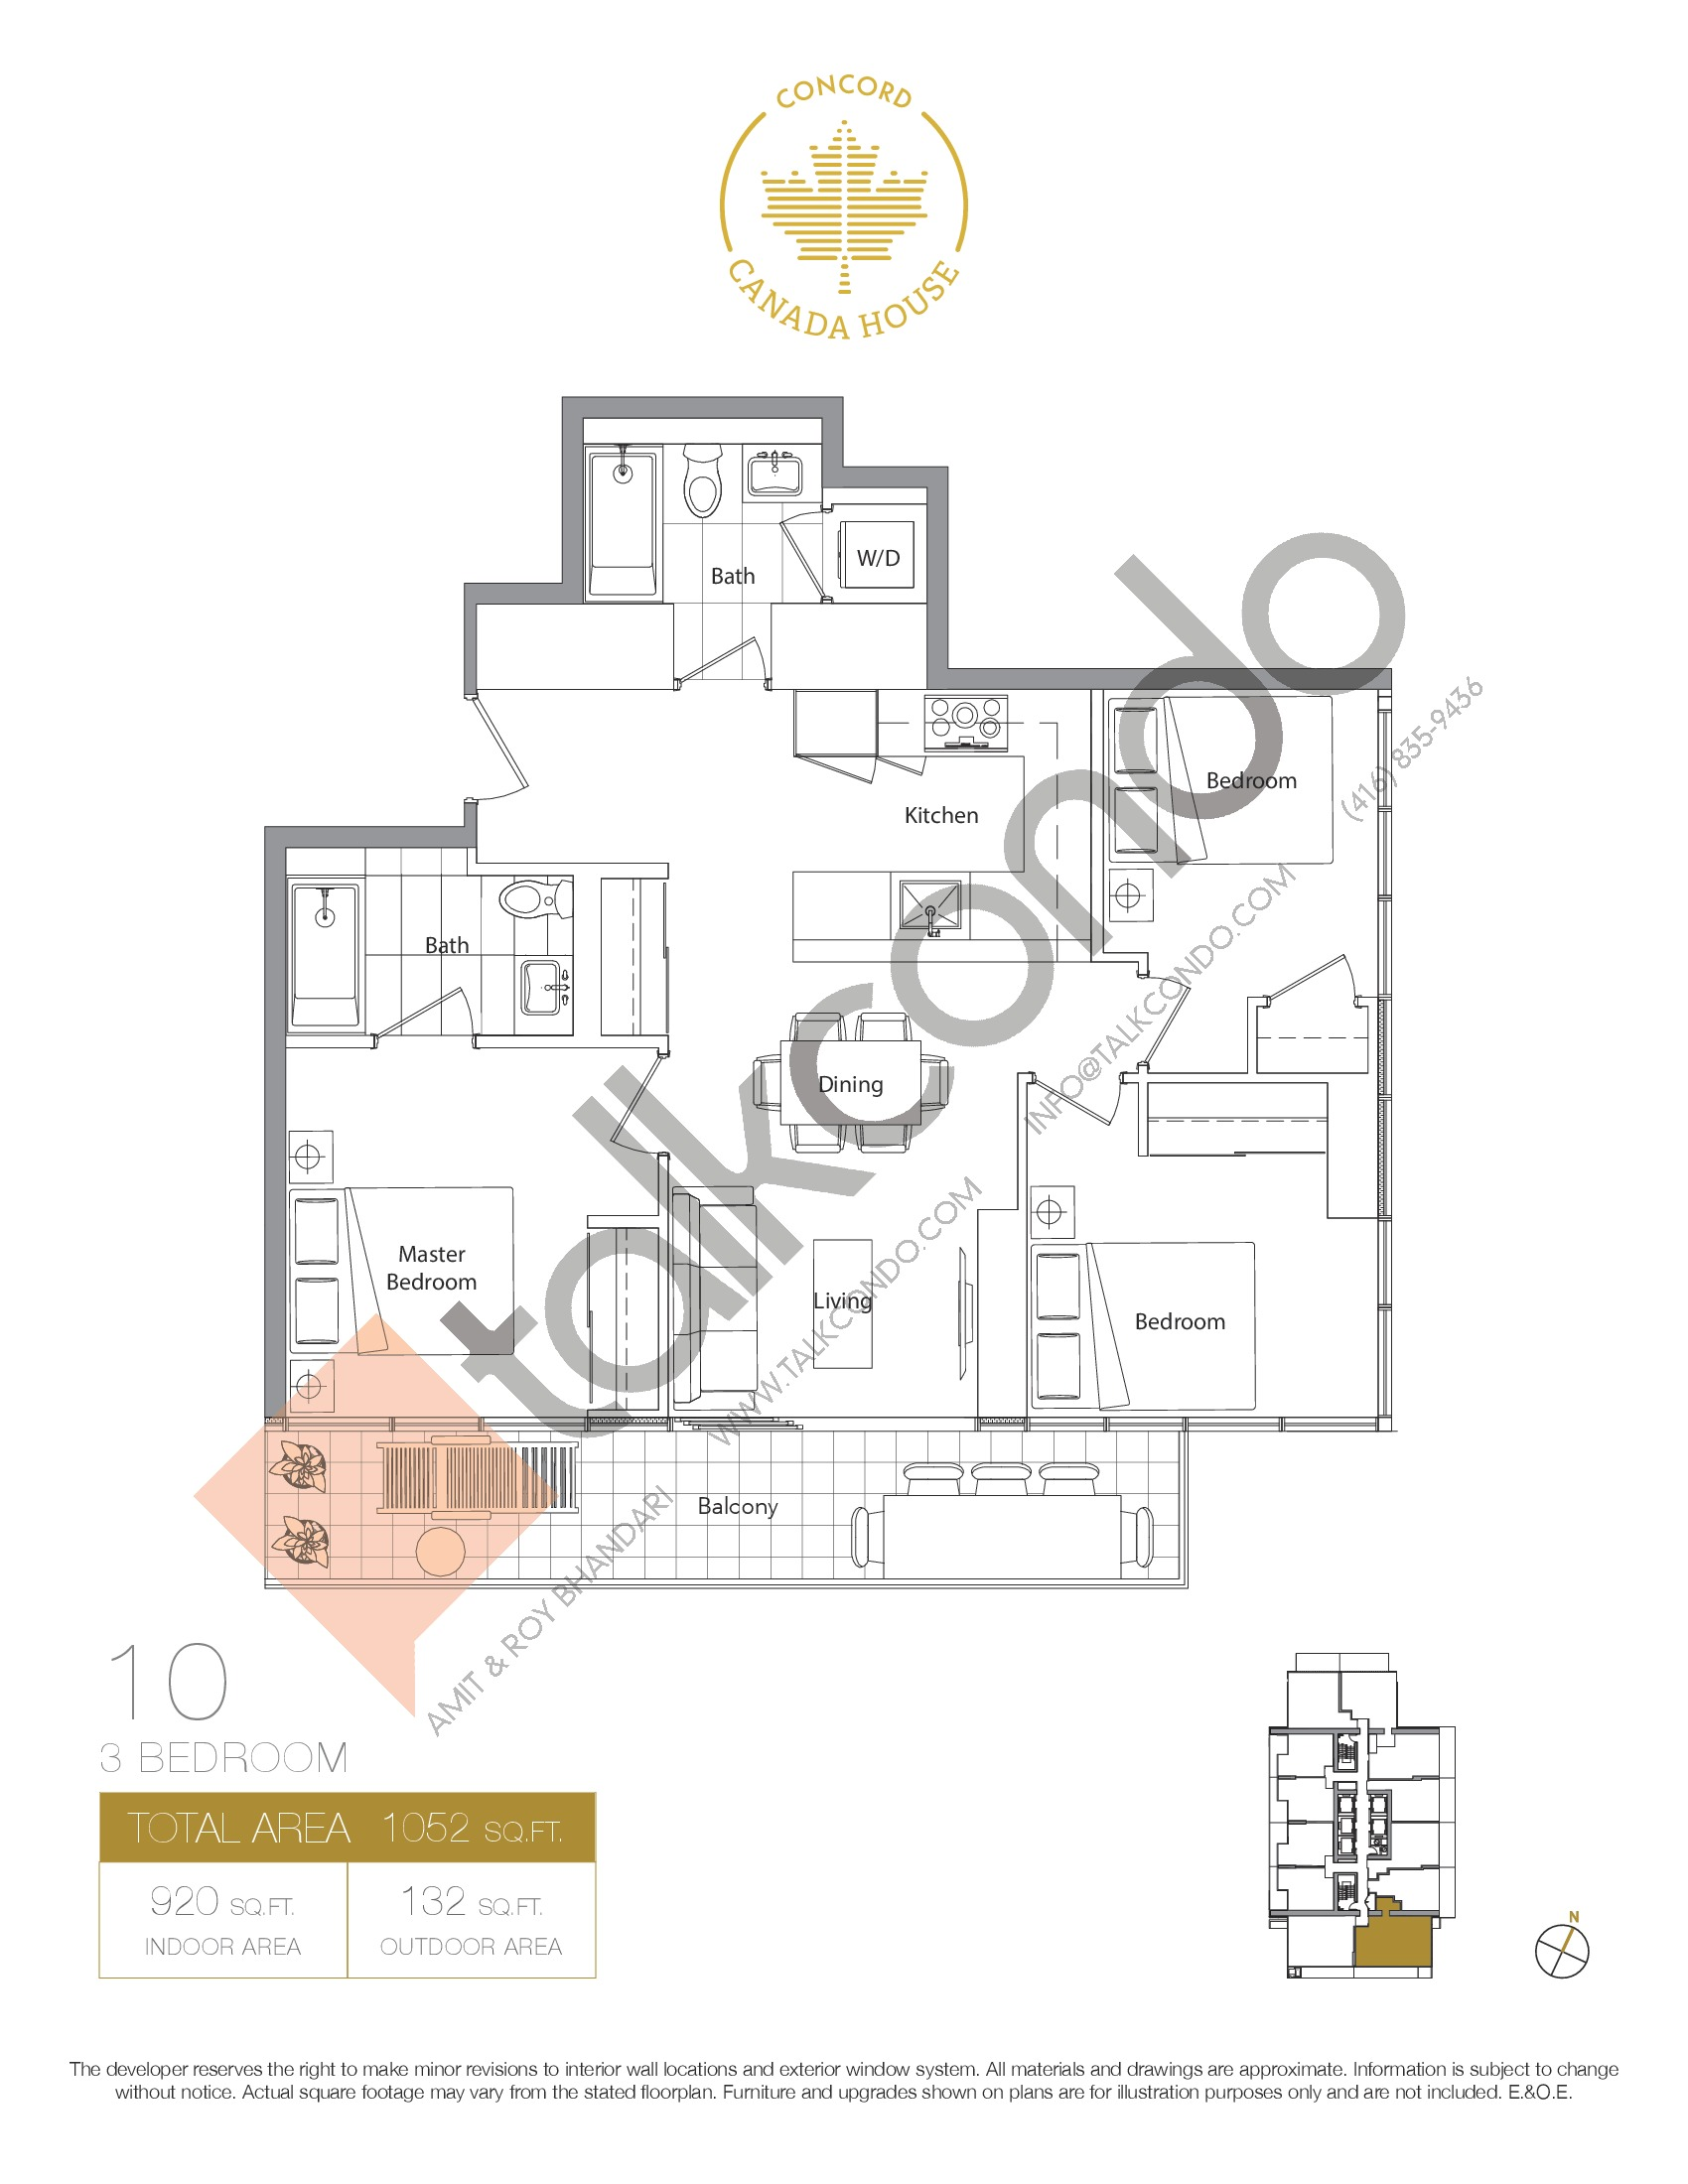 10 - West Tower Floor Plan at Concord Canada House Condos - 920 sq.ft